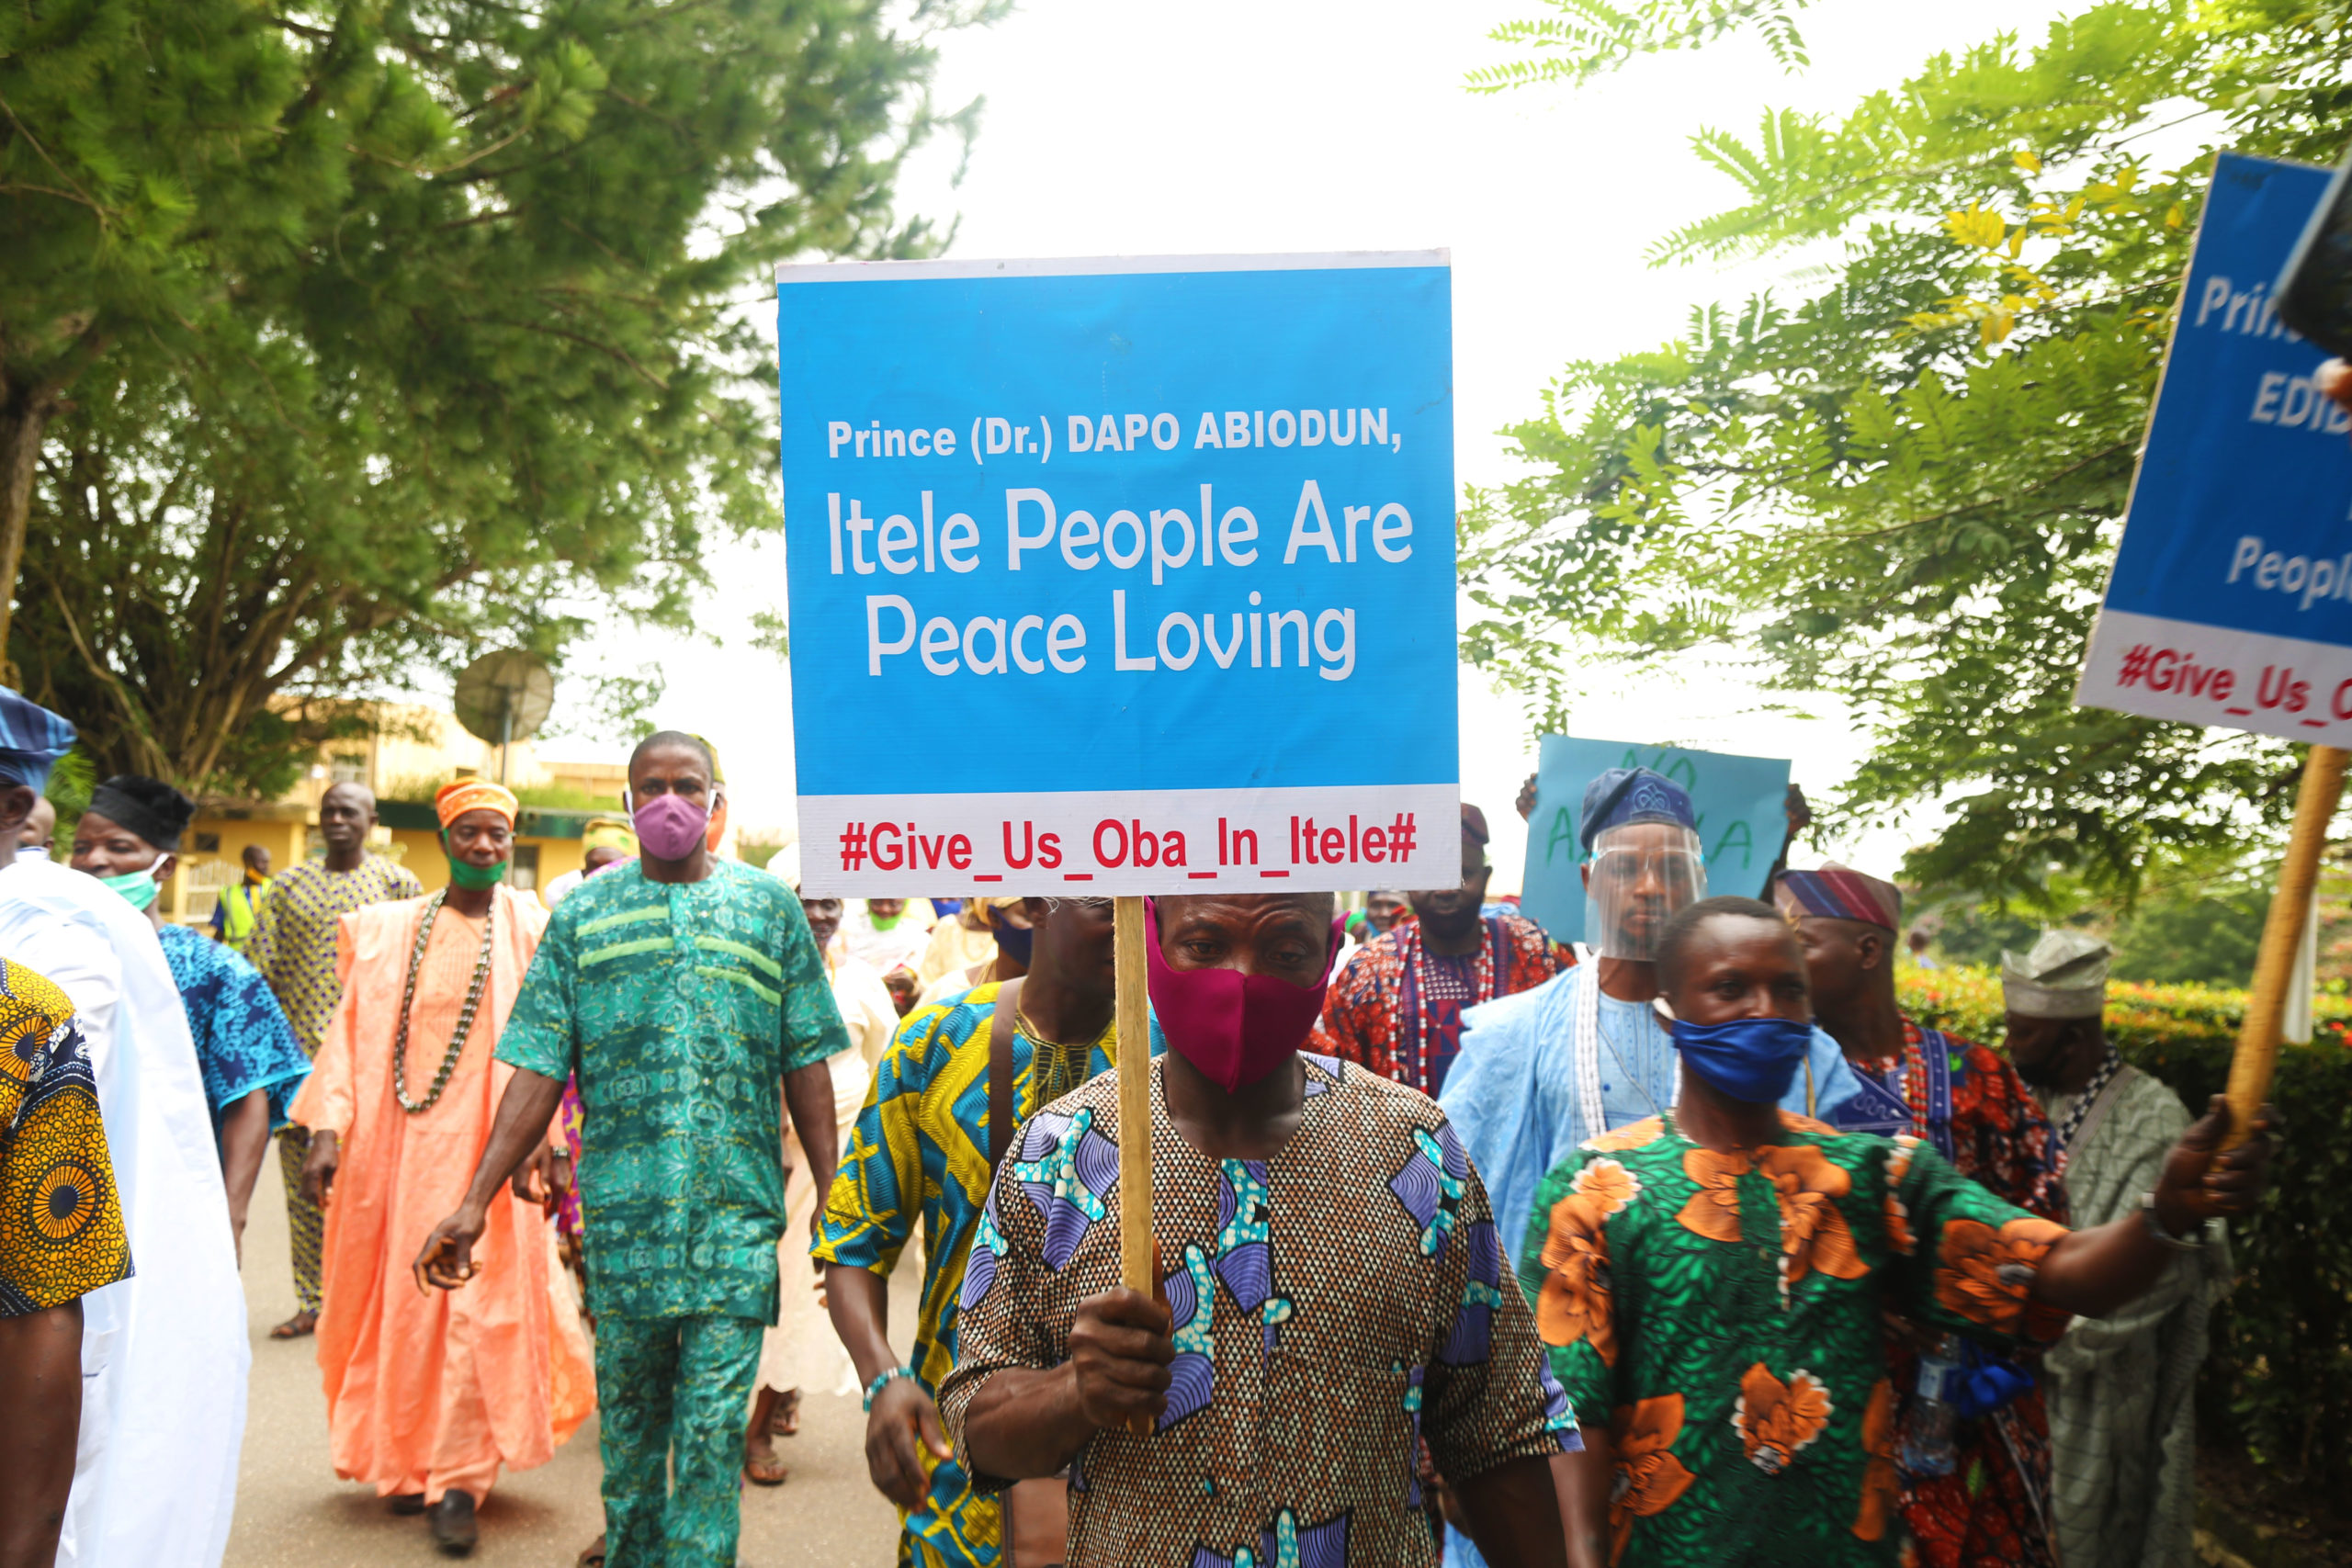 Protesters March In Demand Of Prince Ademola Asorota (Eletu Odibo) As Oba Of Itele-Ota, Charge State Government To Speed Up Selection Process